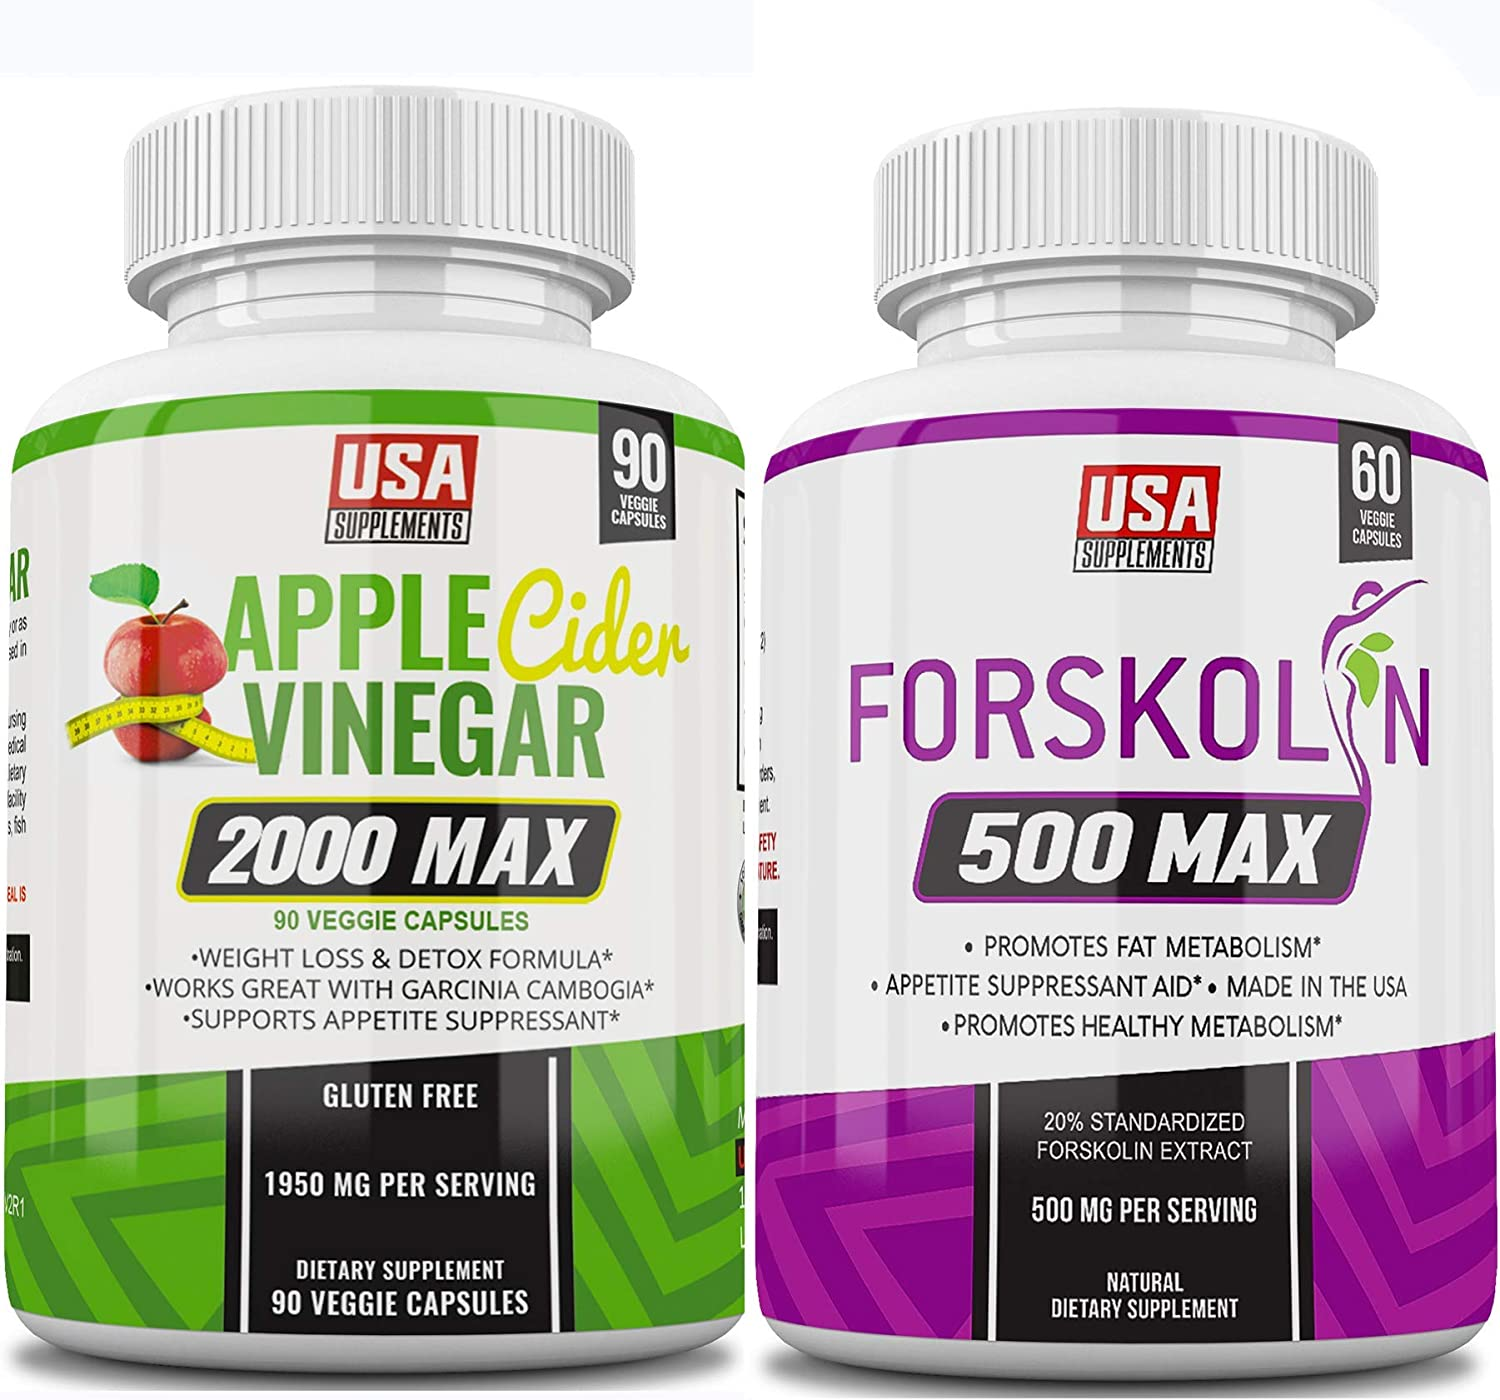 Apple Cider Vinegar Pills & Forskolin 500 Max (One Bottle of Each)